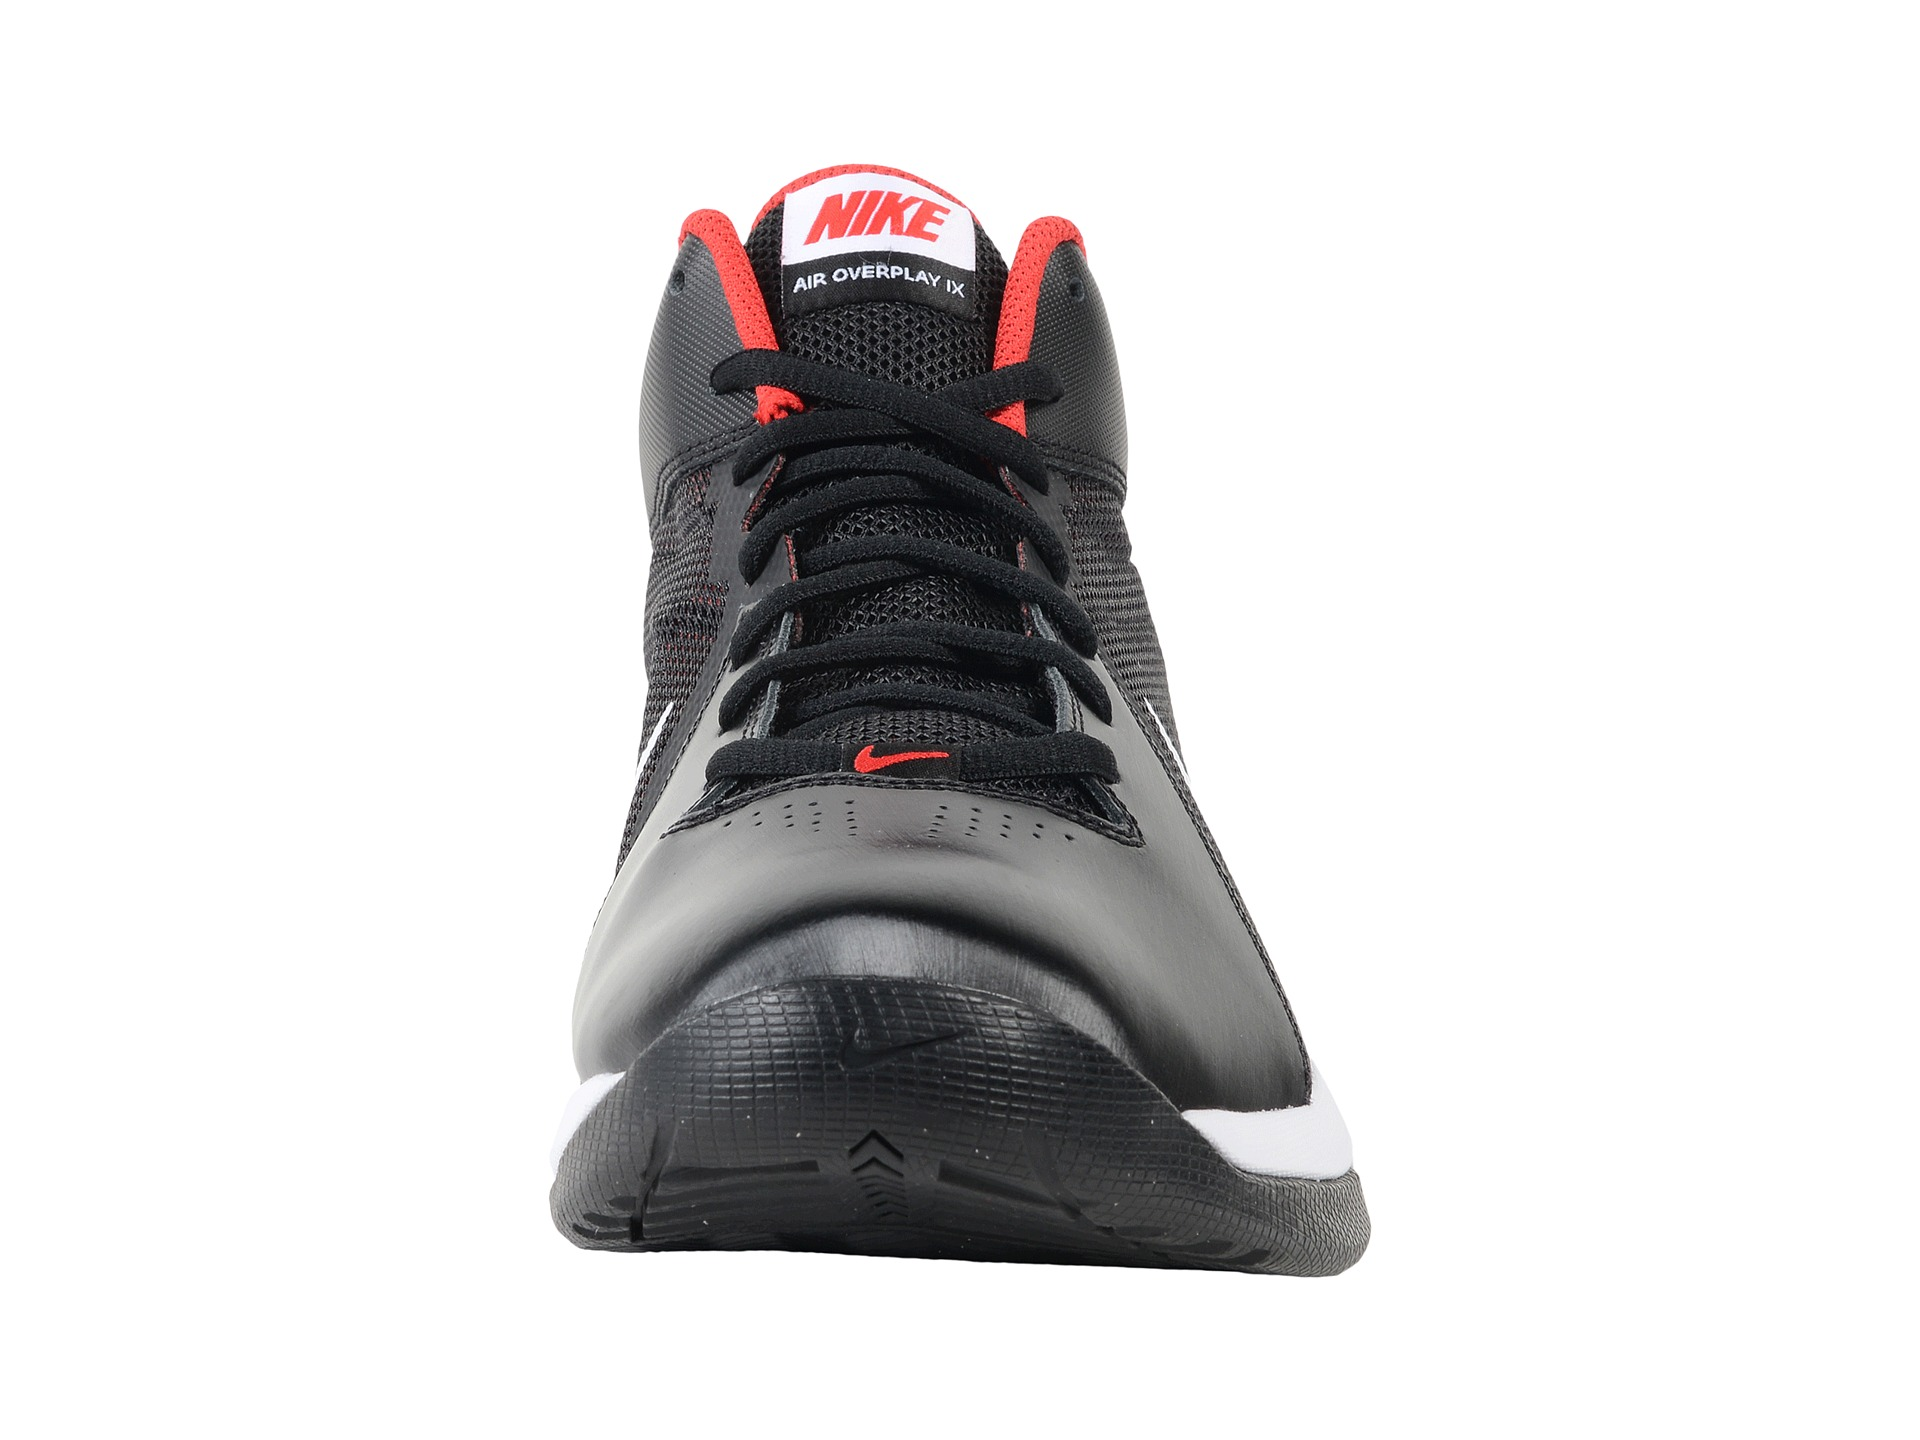 0cea5d7cc934db Nike Air Overplay Vi In India